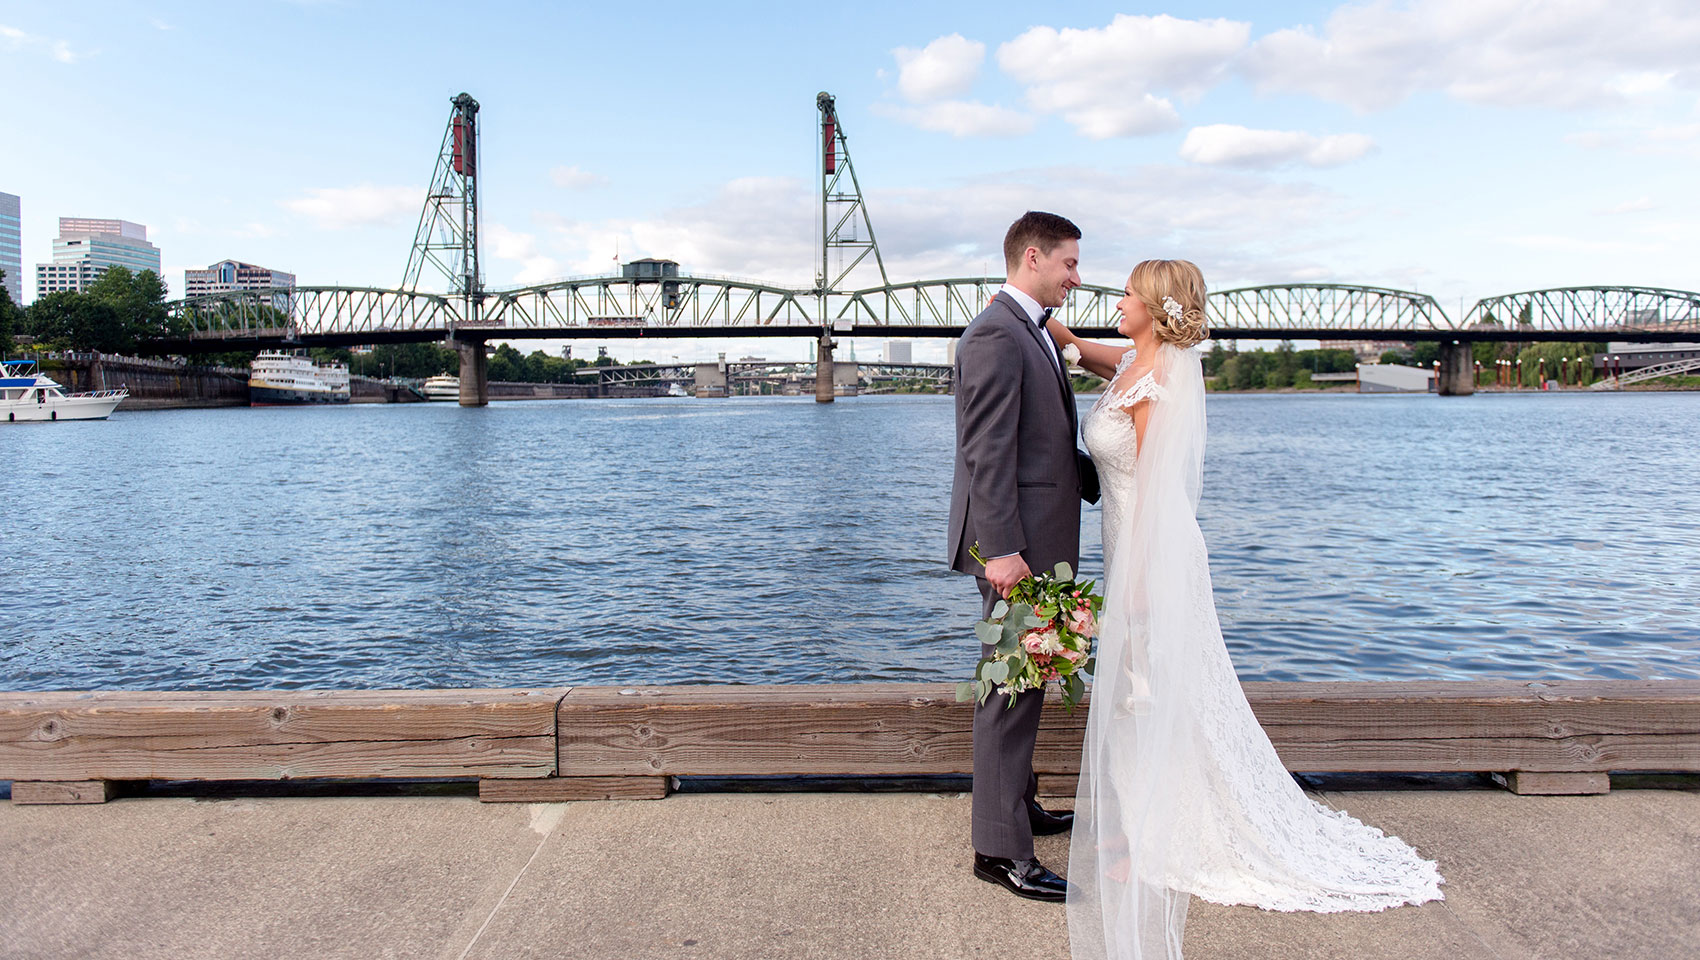 wedding photo spots in Portland